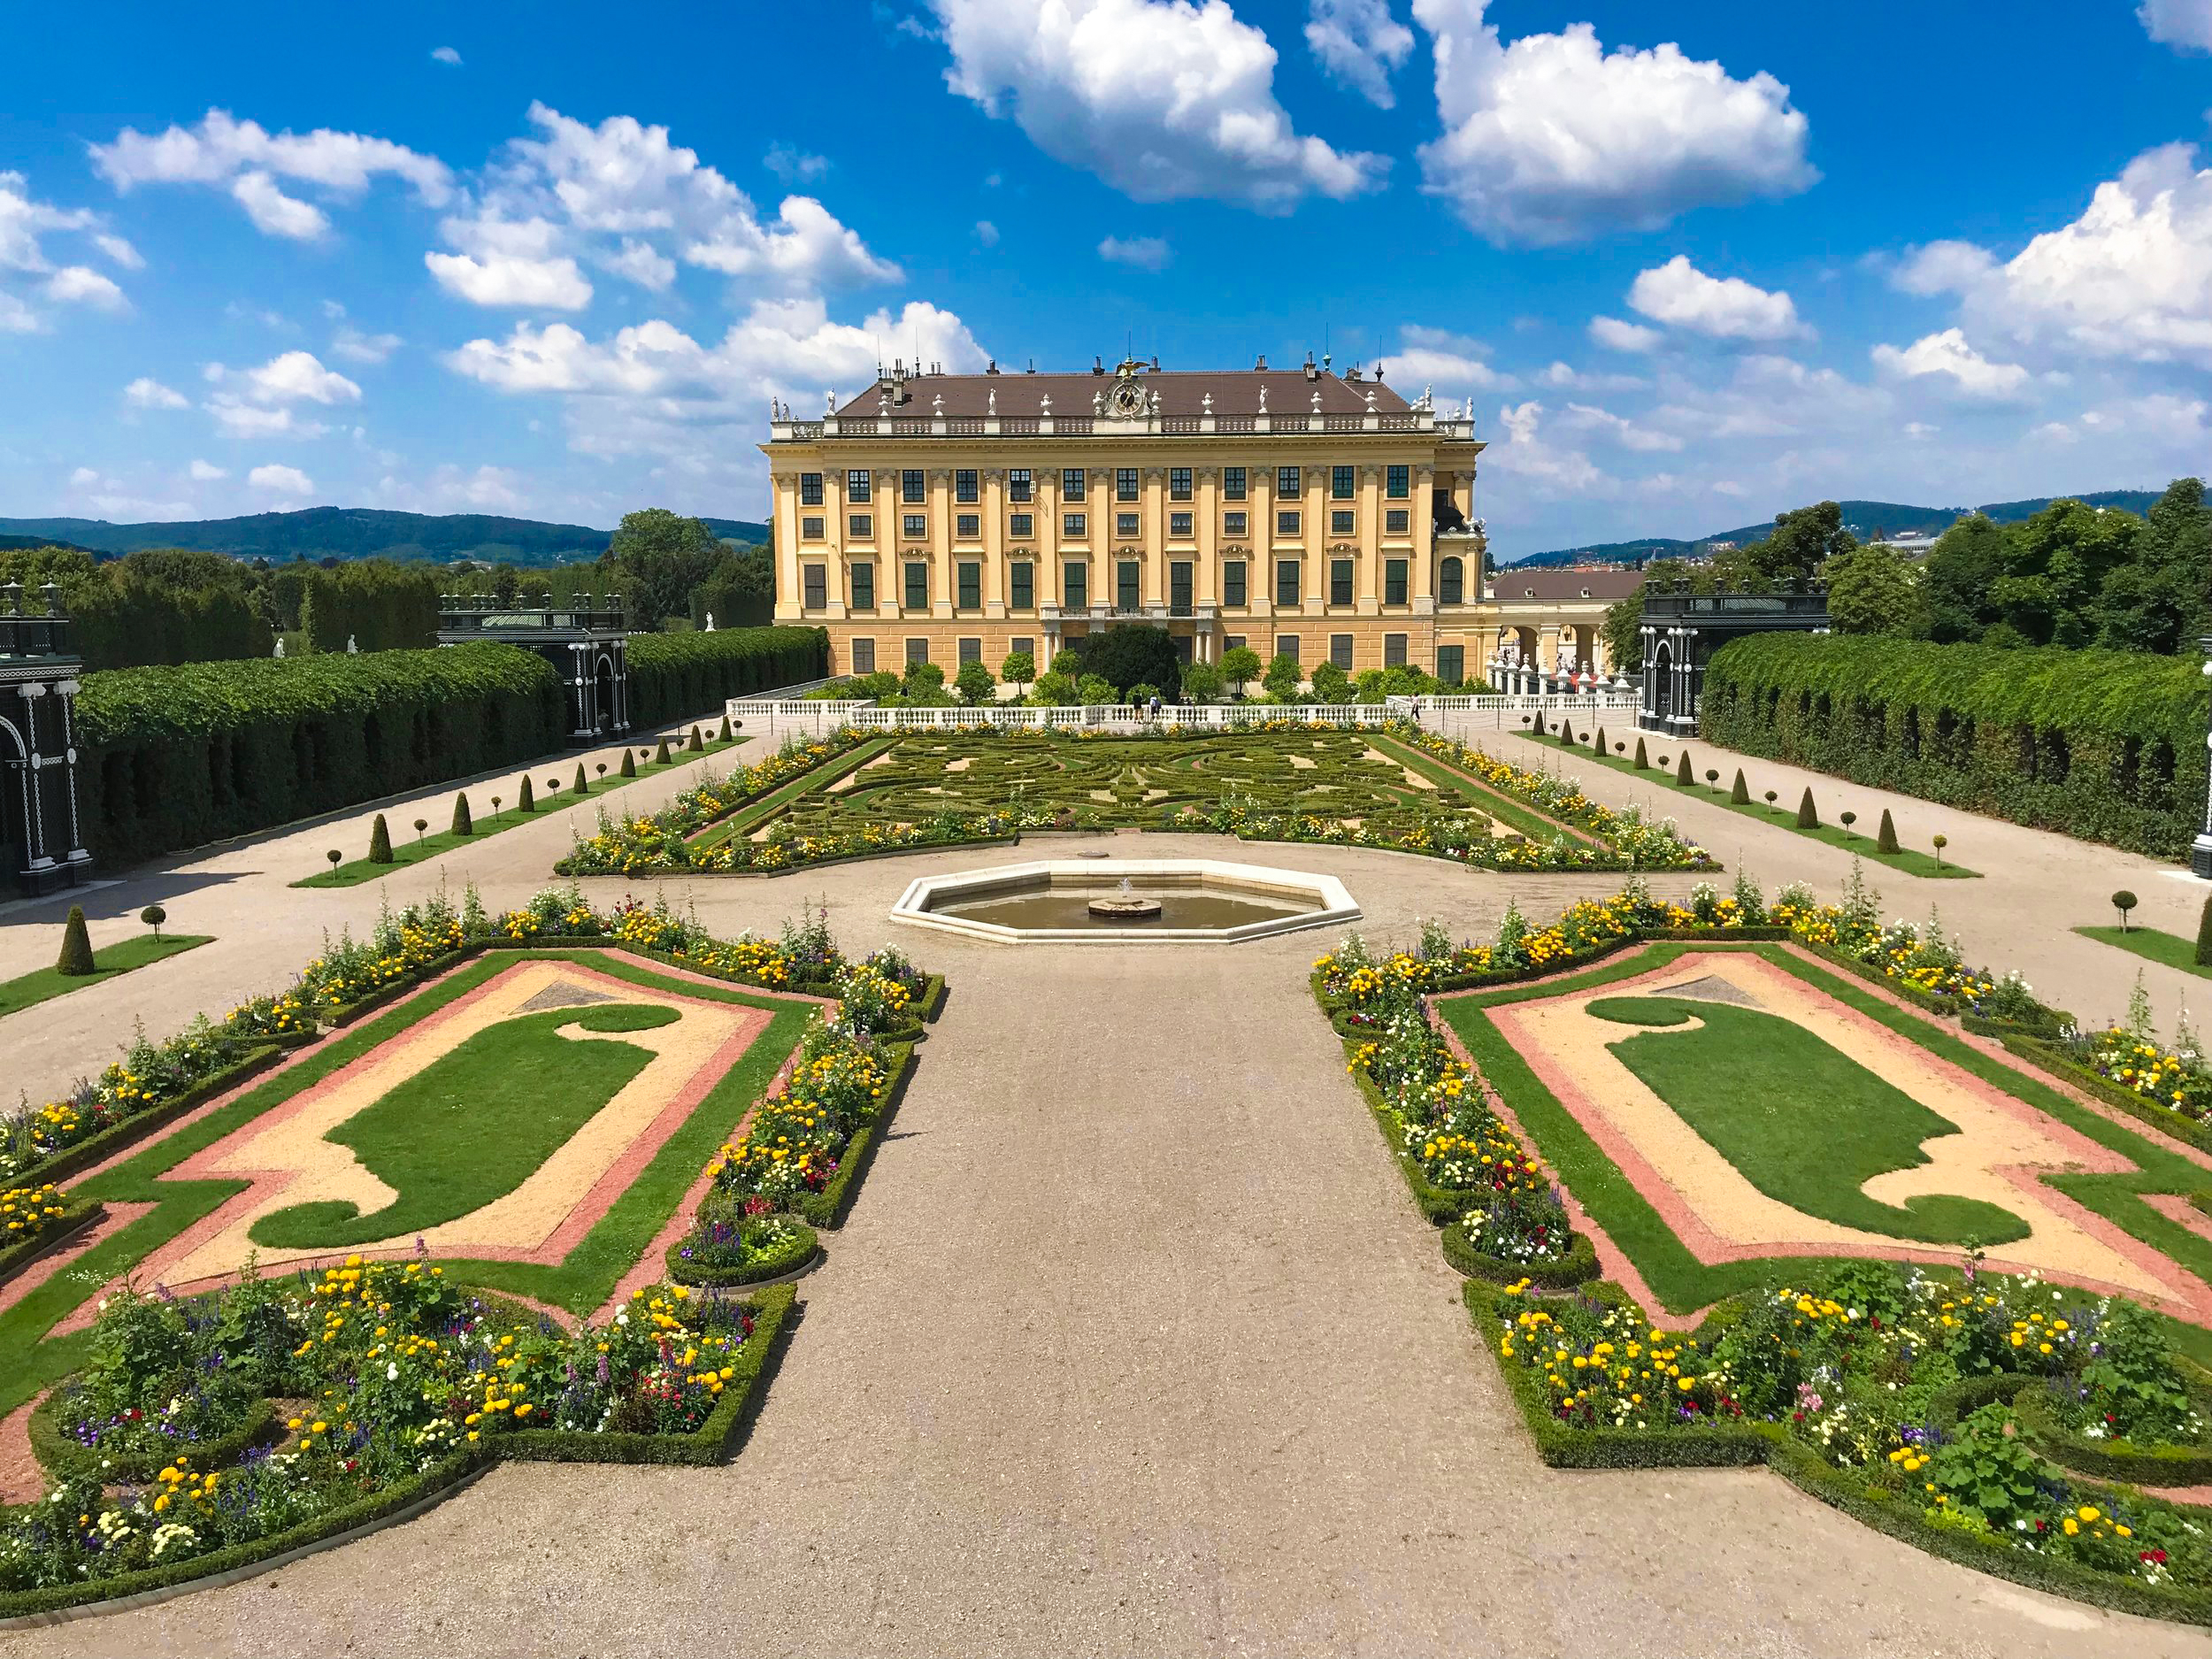 Using Expedia's Add-on Advantage, we managed to score great flights and a hotel in Vienna (pictured is the Summer Palace in Vienna).